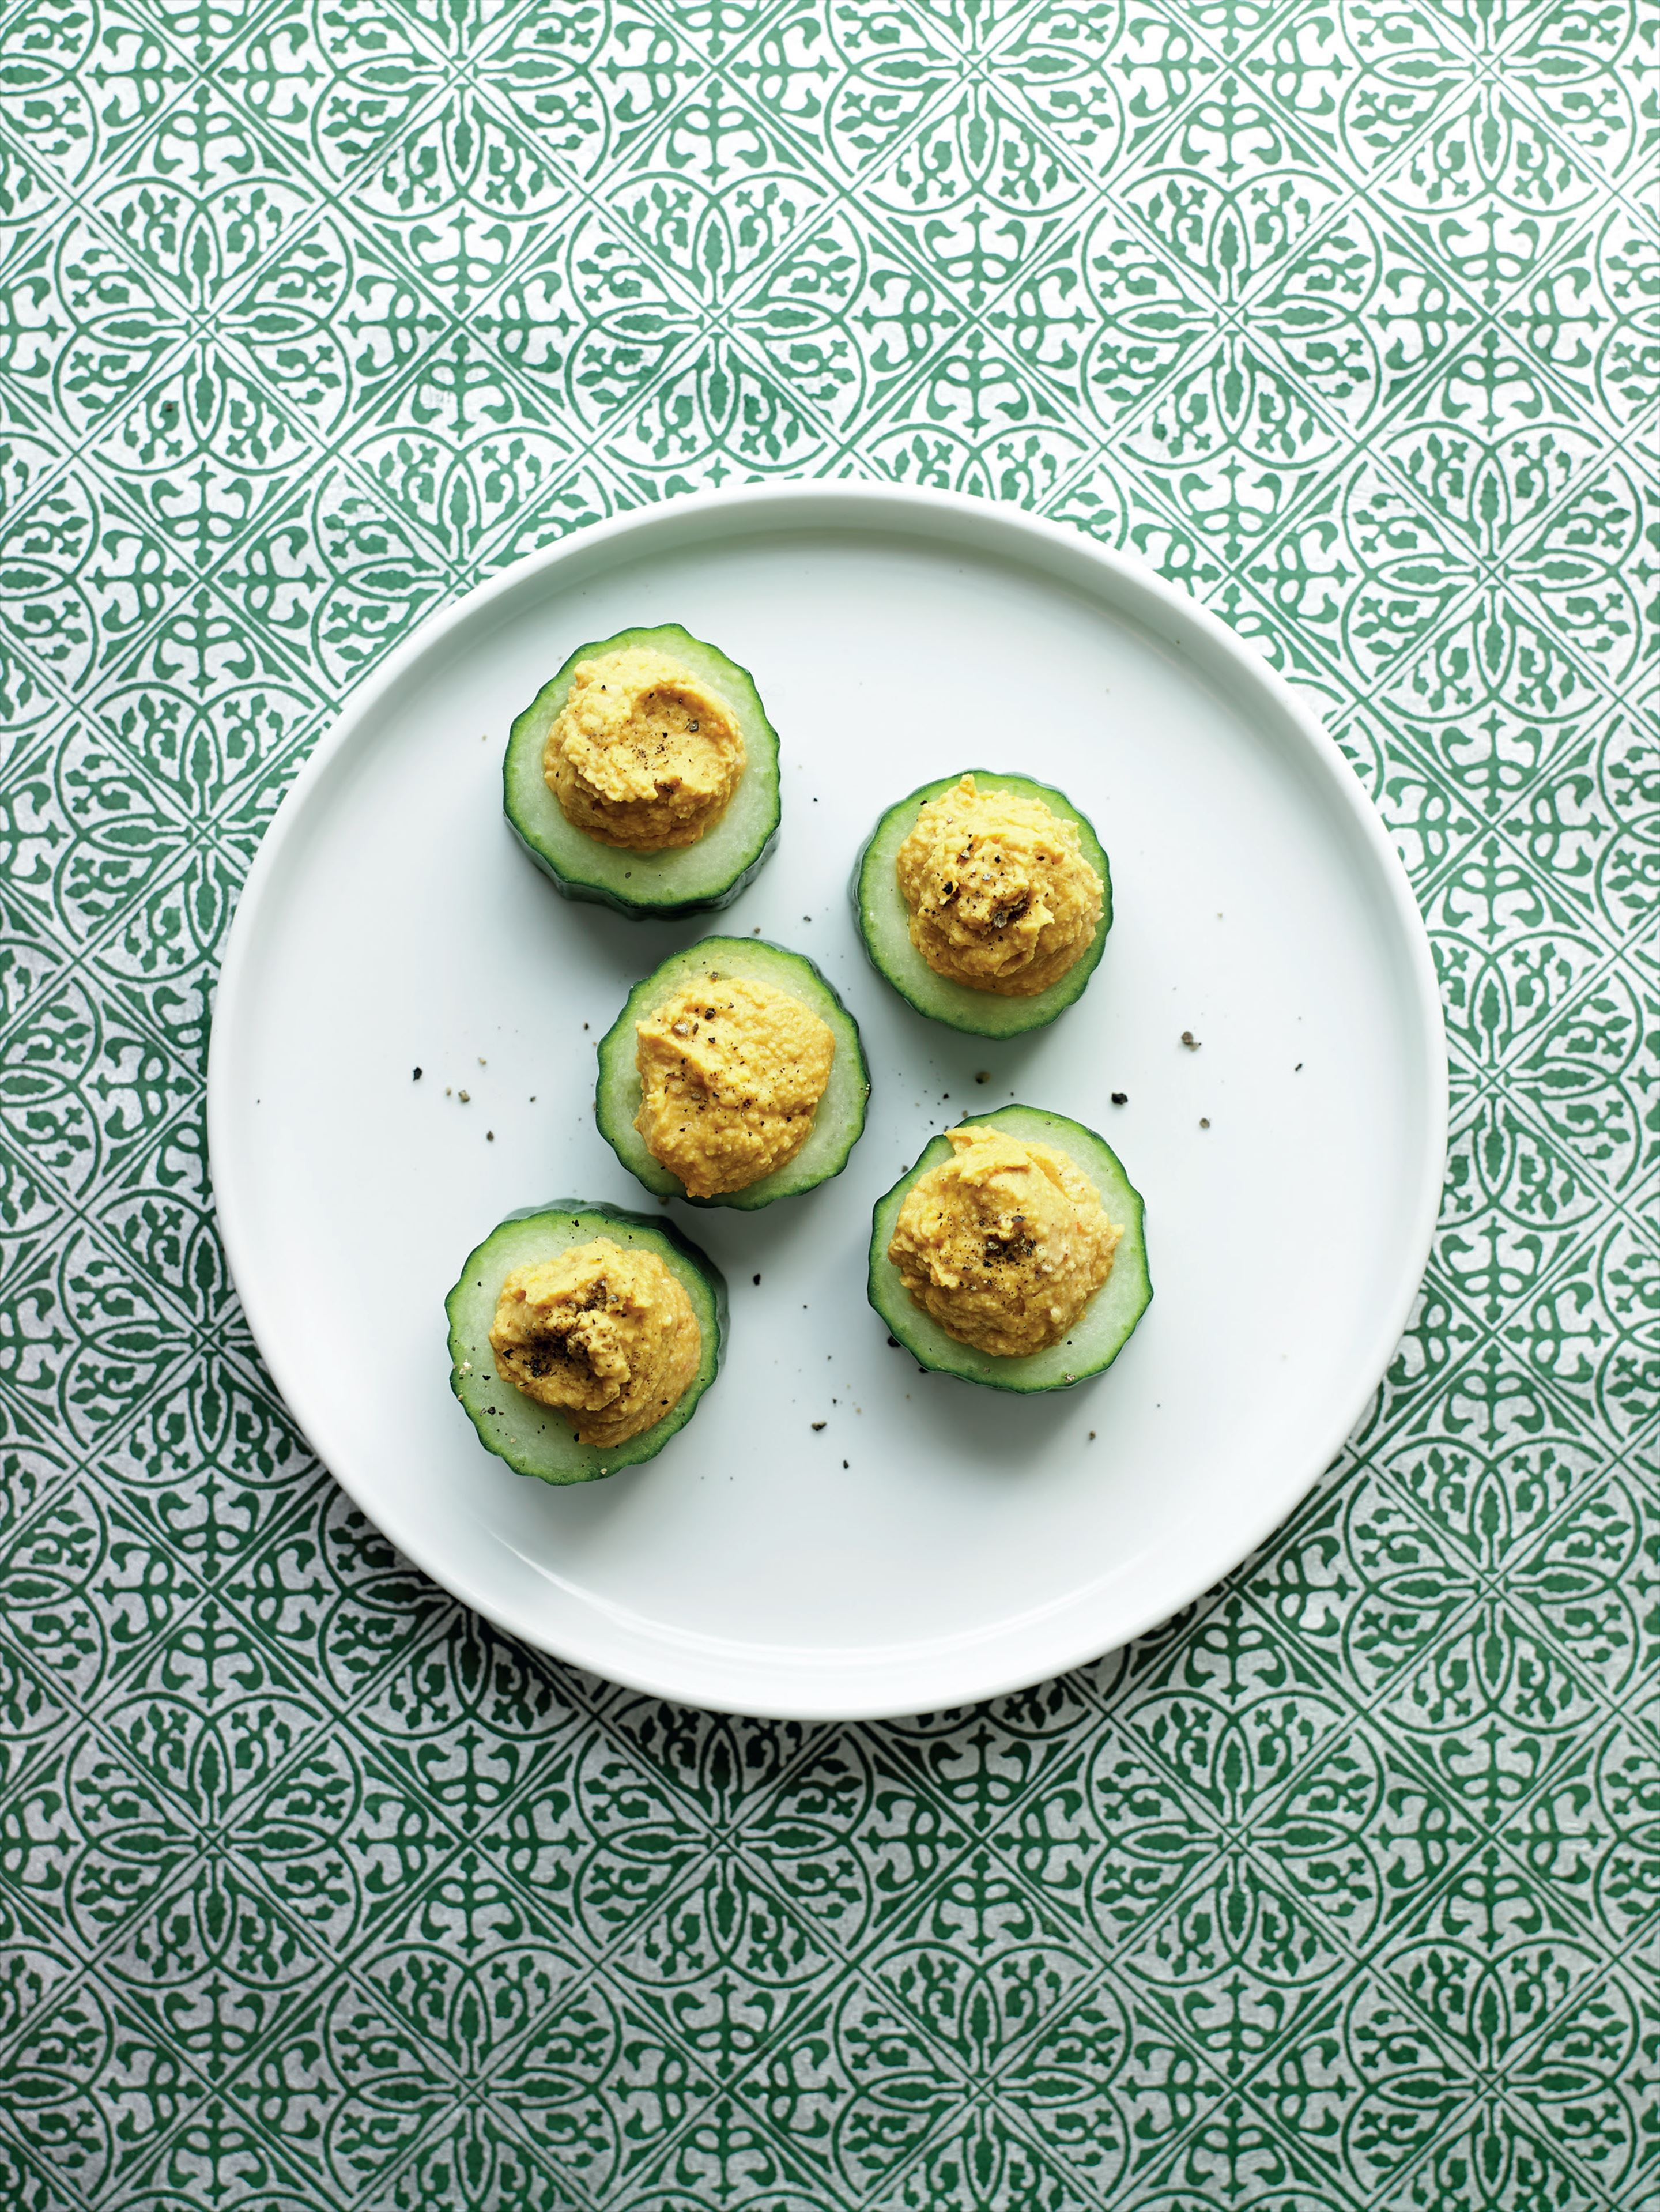 Cucumber and houmous maki